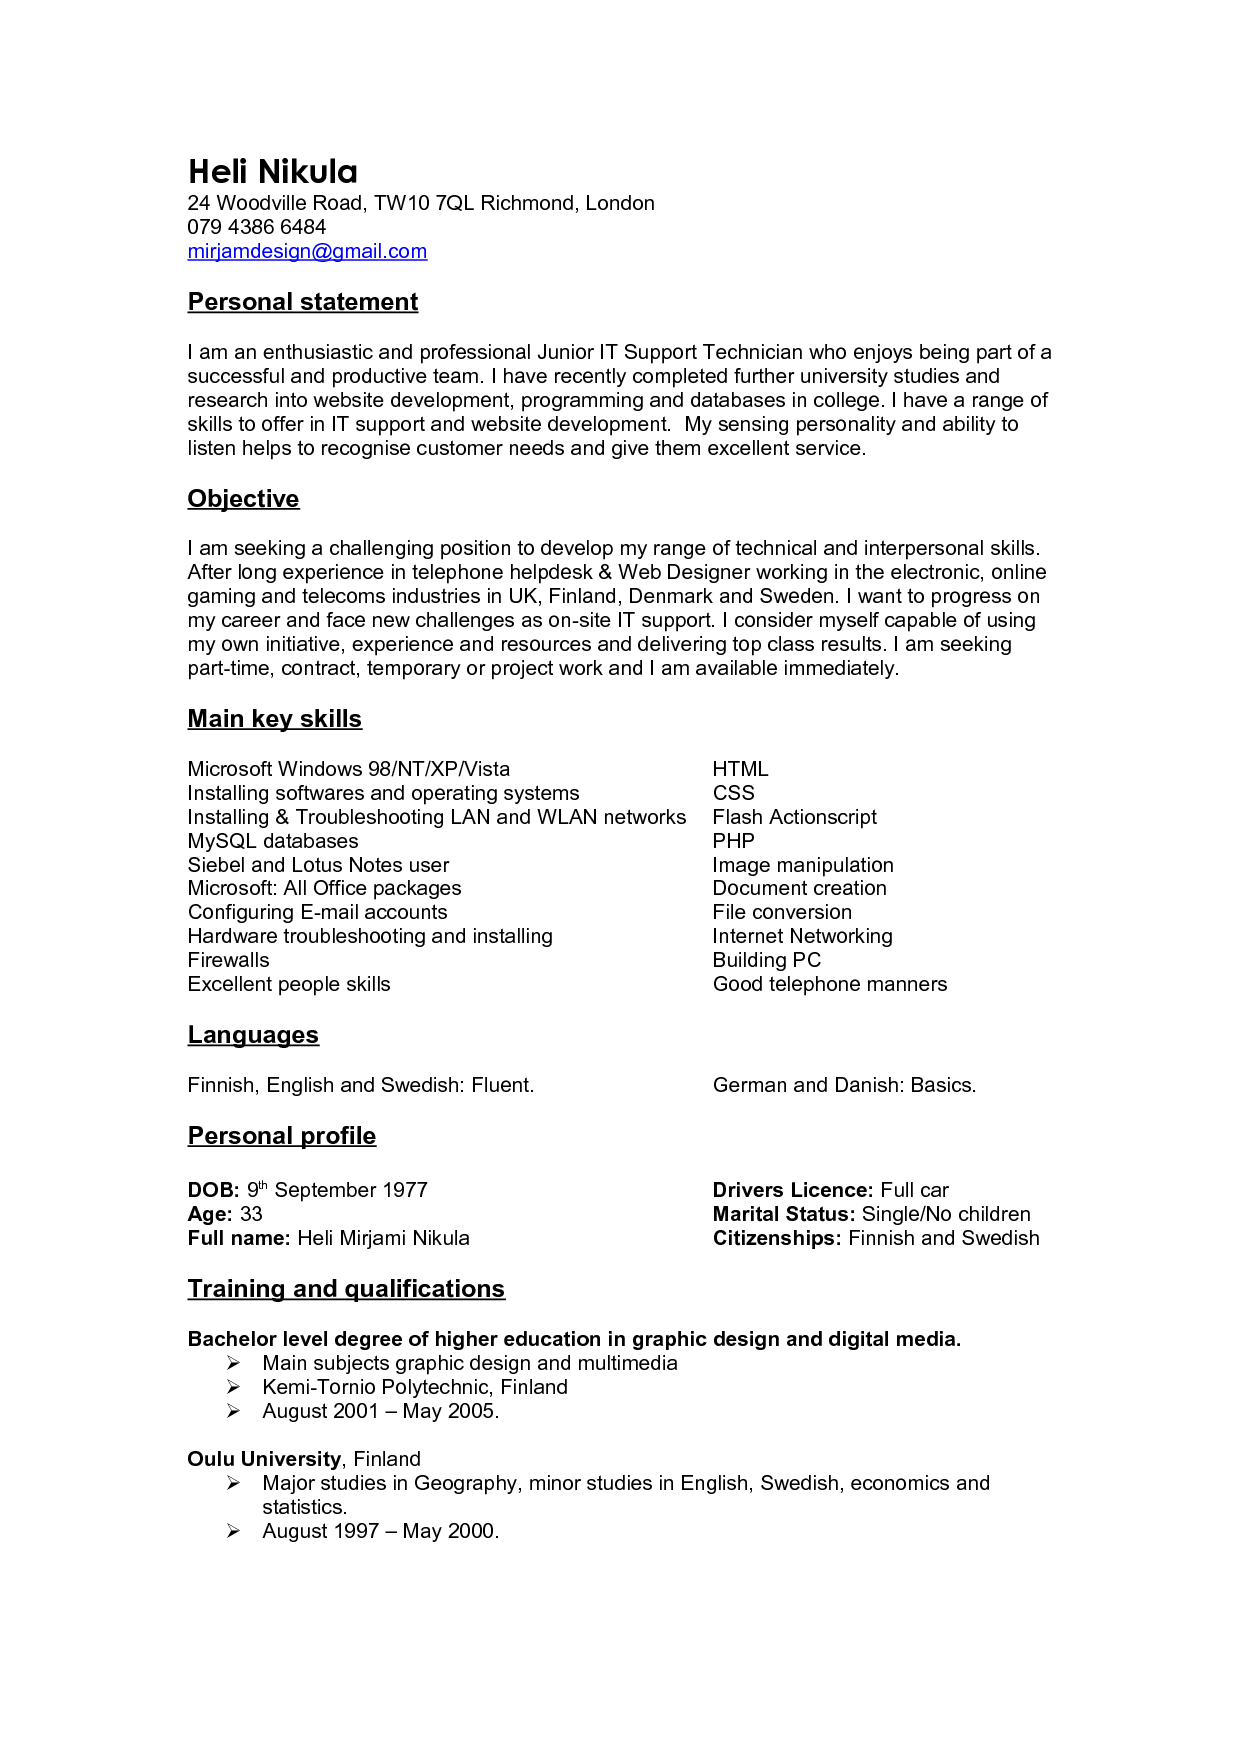 Personal Branding Statement Resume Examples  Home Design Idea